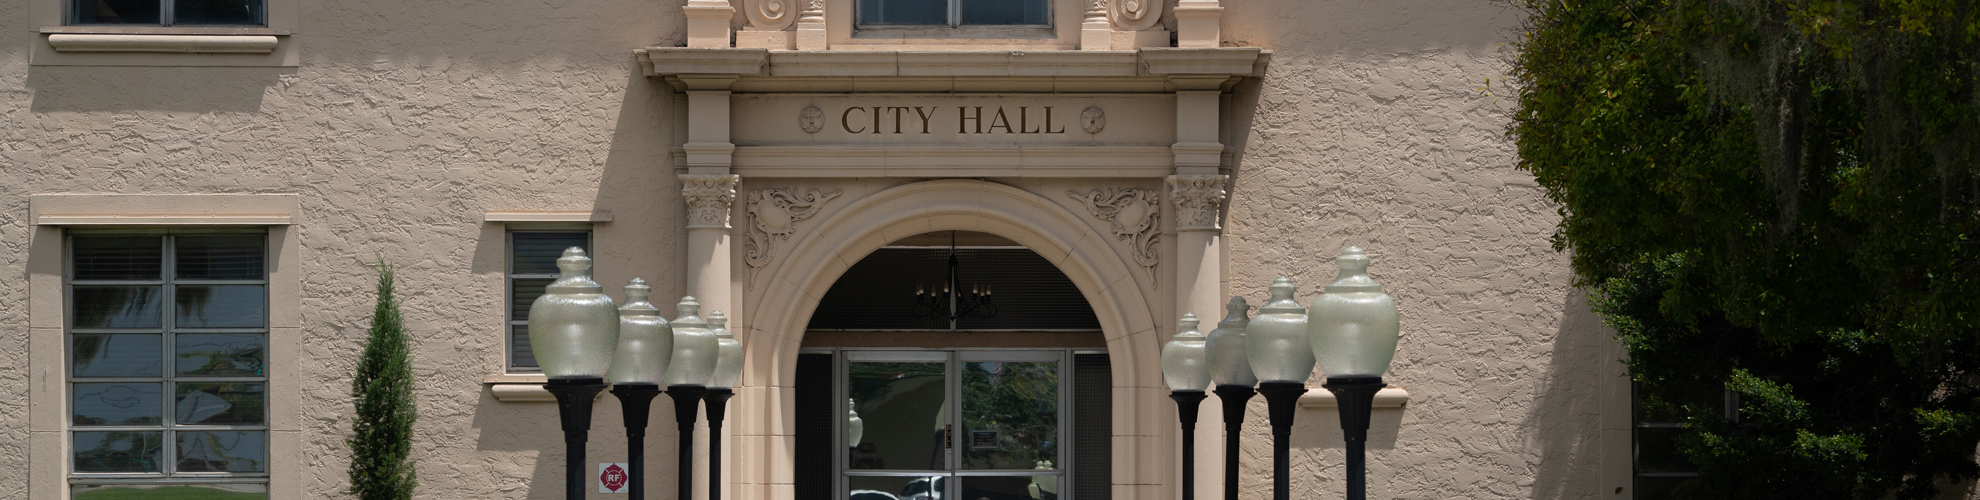 County / State Services | City of Okeechobee